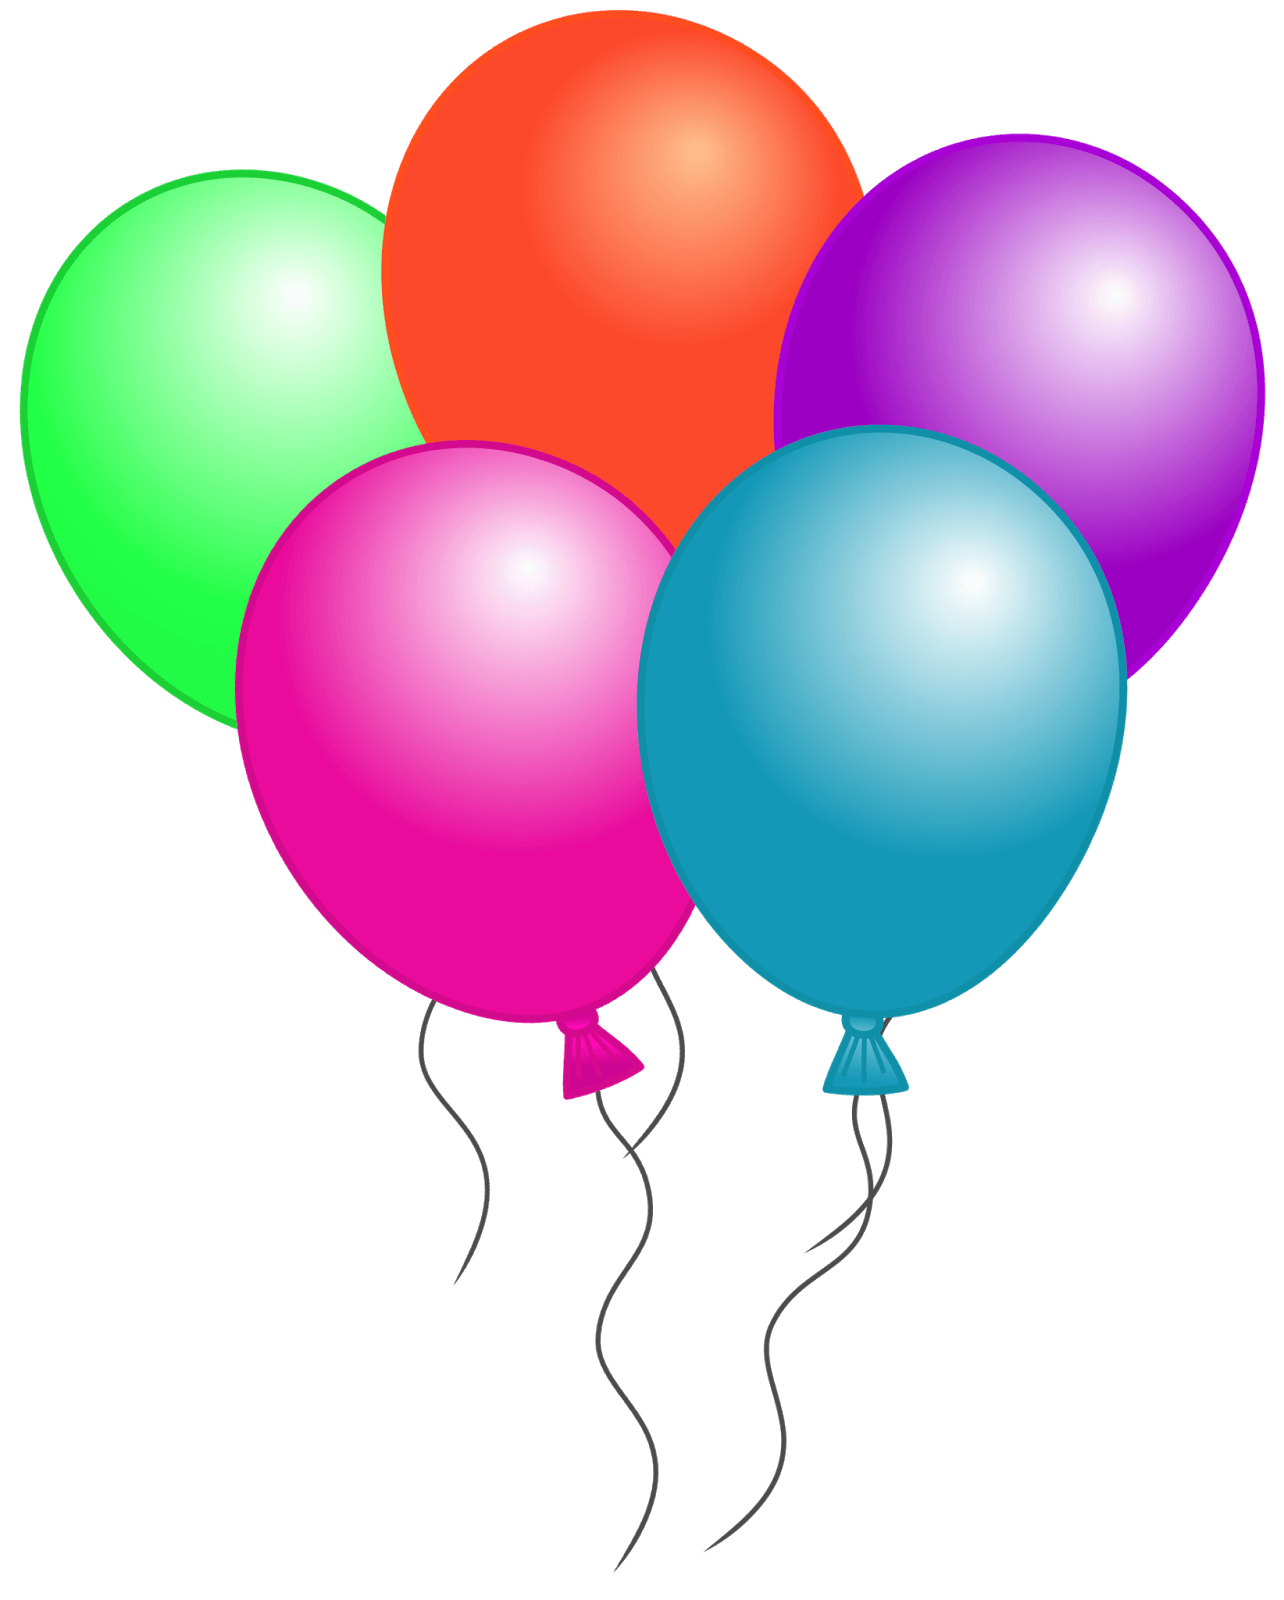 Clipart balloon clusters svg transparent stock Balloon Texture Cliparts - Cliparts Zone svg transparent stock